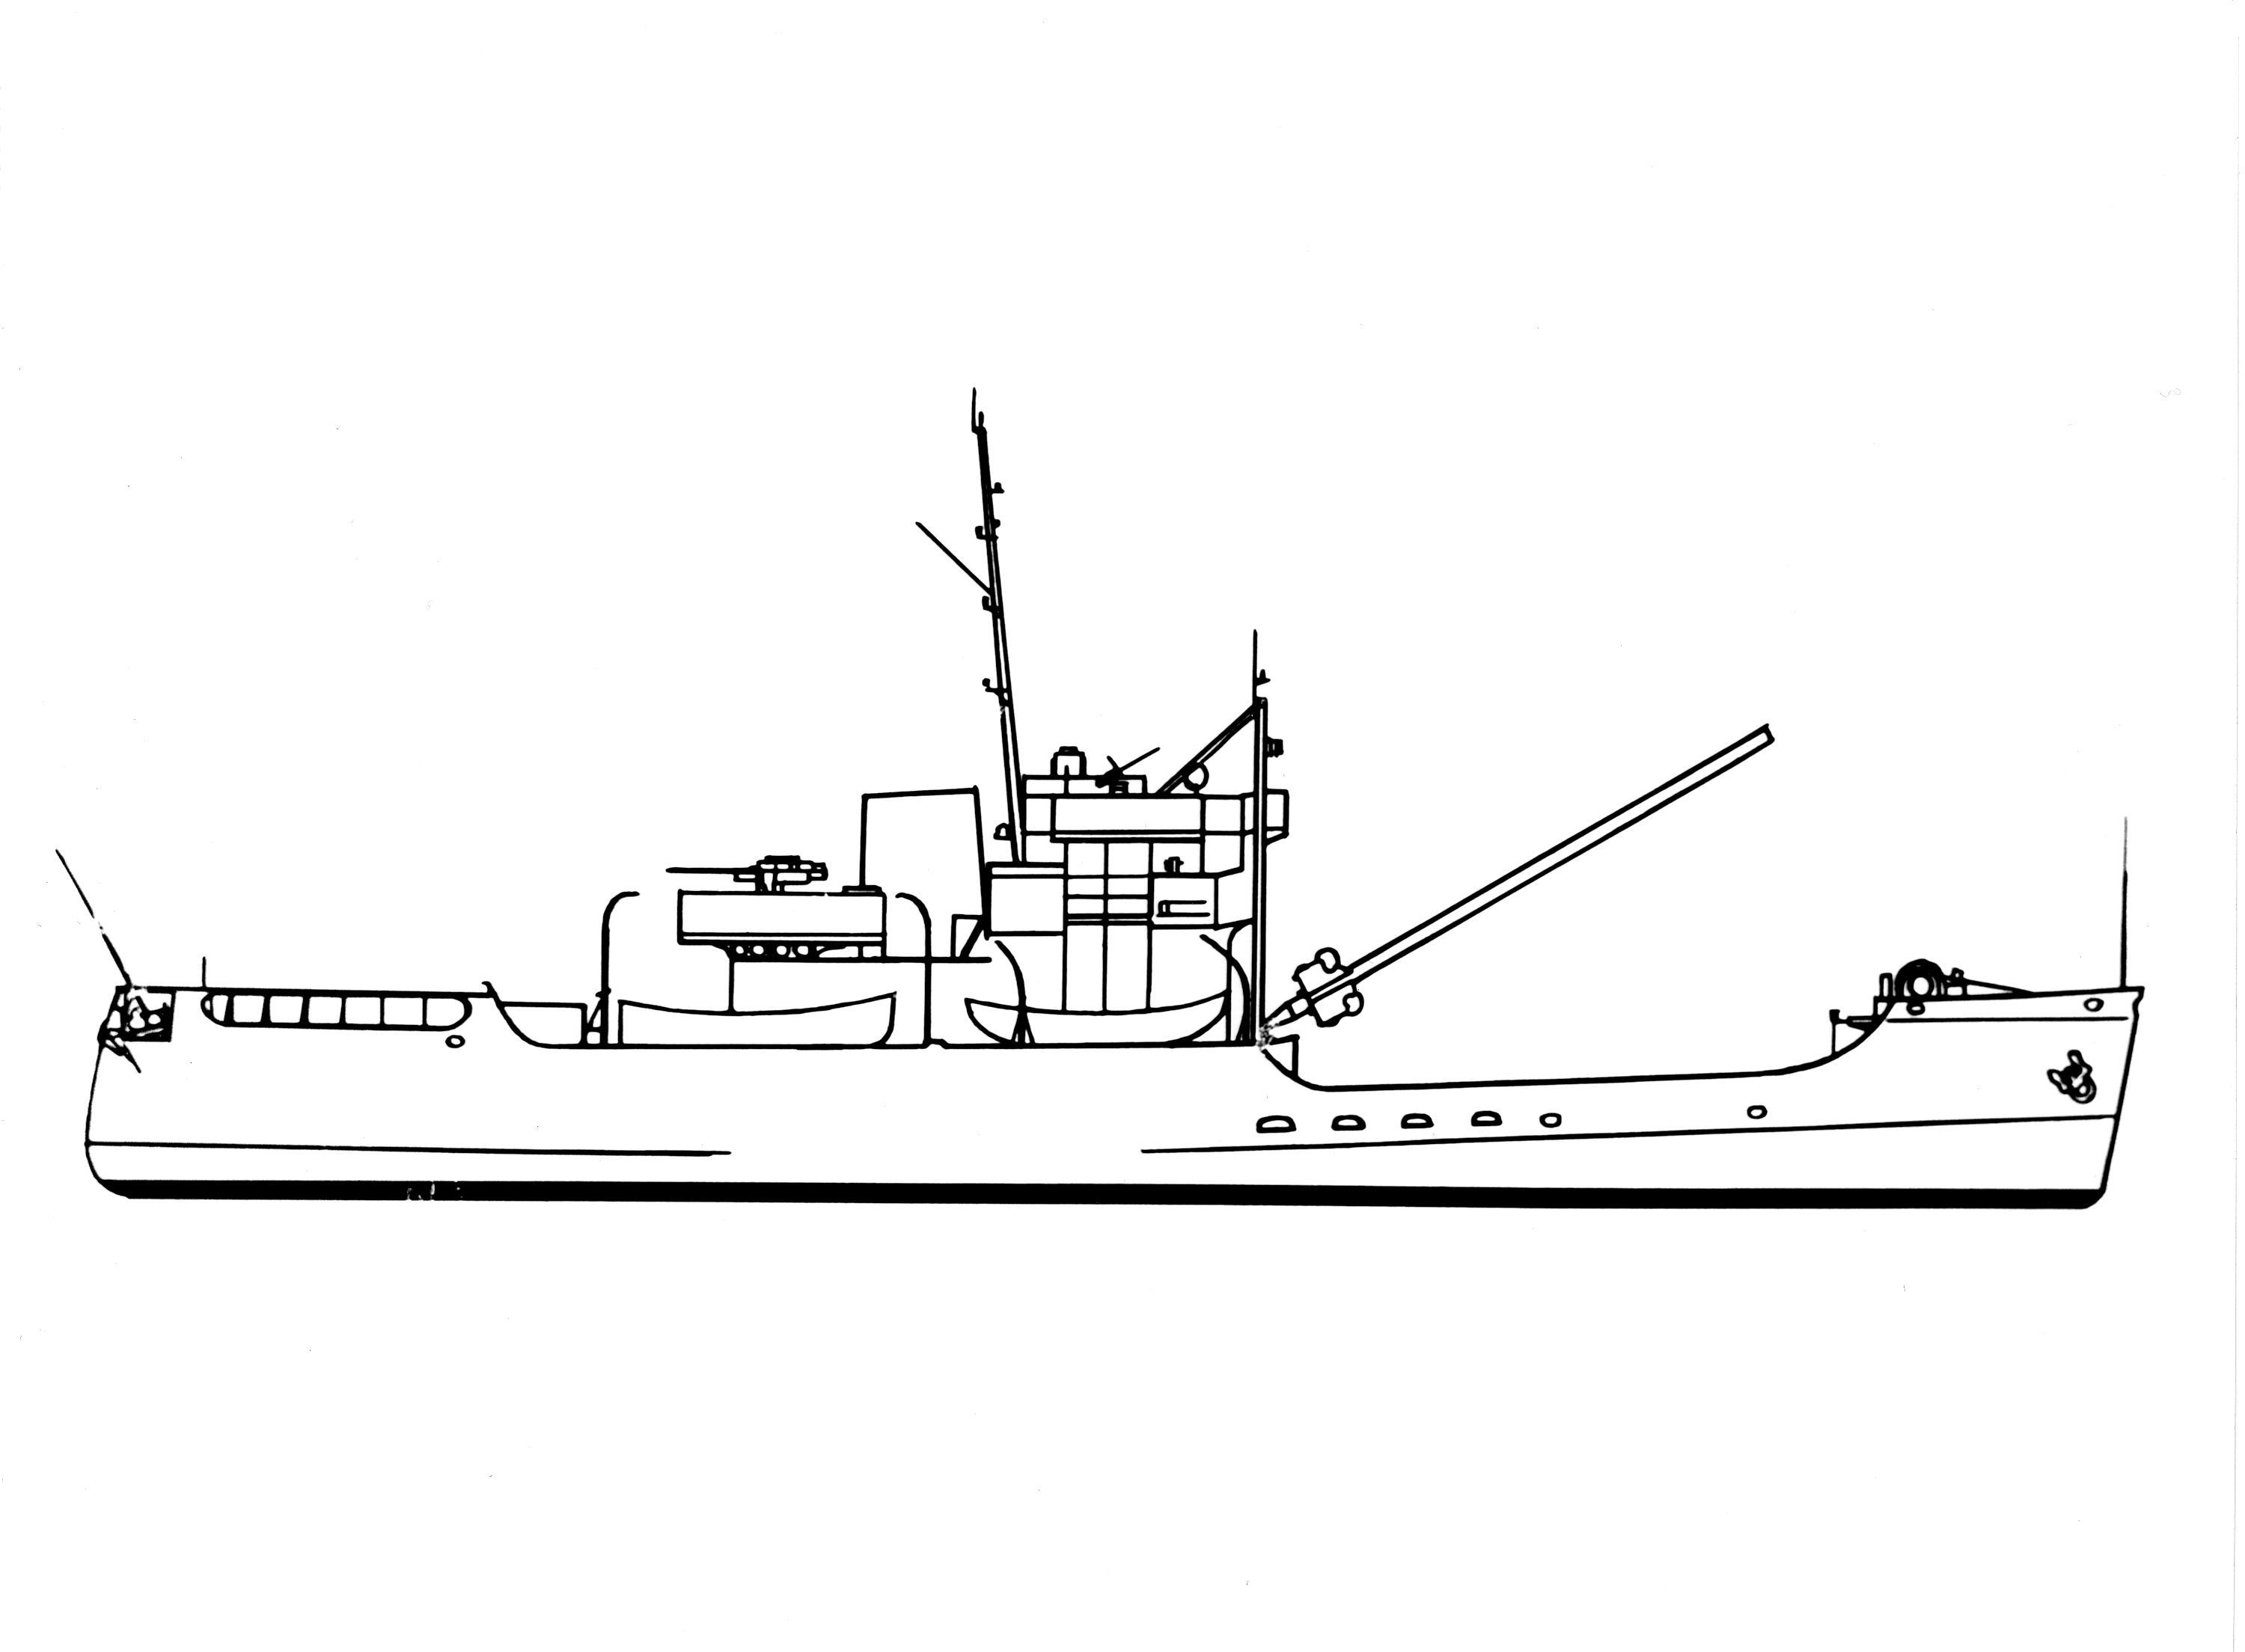 Drawn amd ship Line Historic Plans and Other